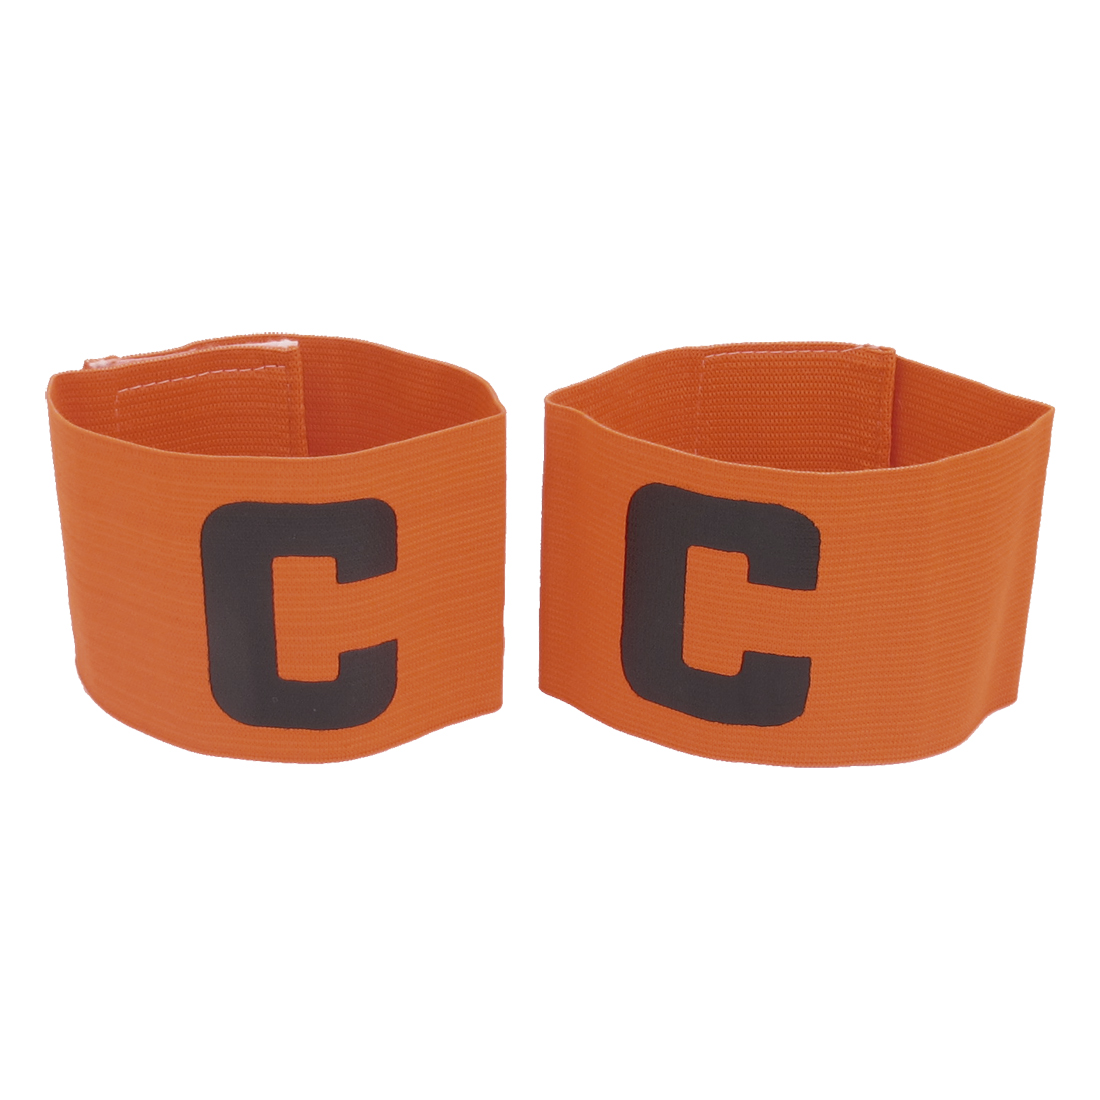 Hook Loop Fastener Stretchy Team Football Tension Match Captain Armband Badge Orange 2pcs